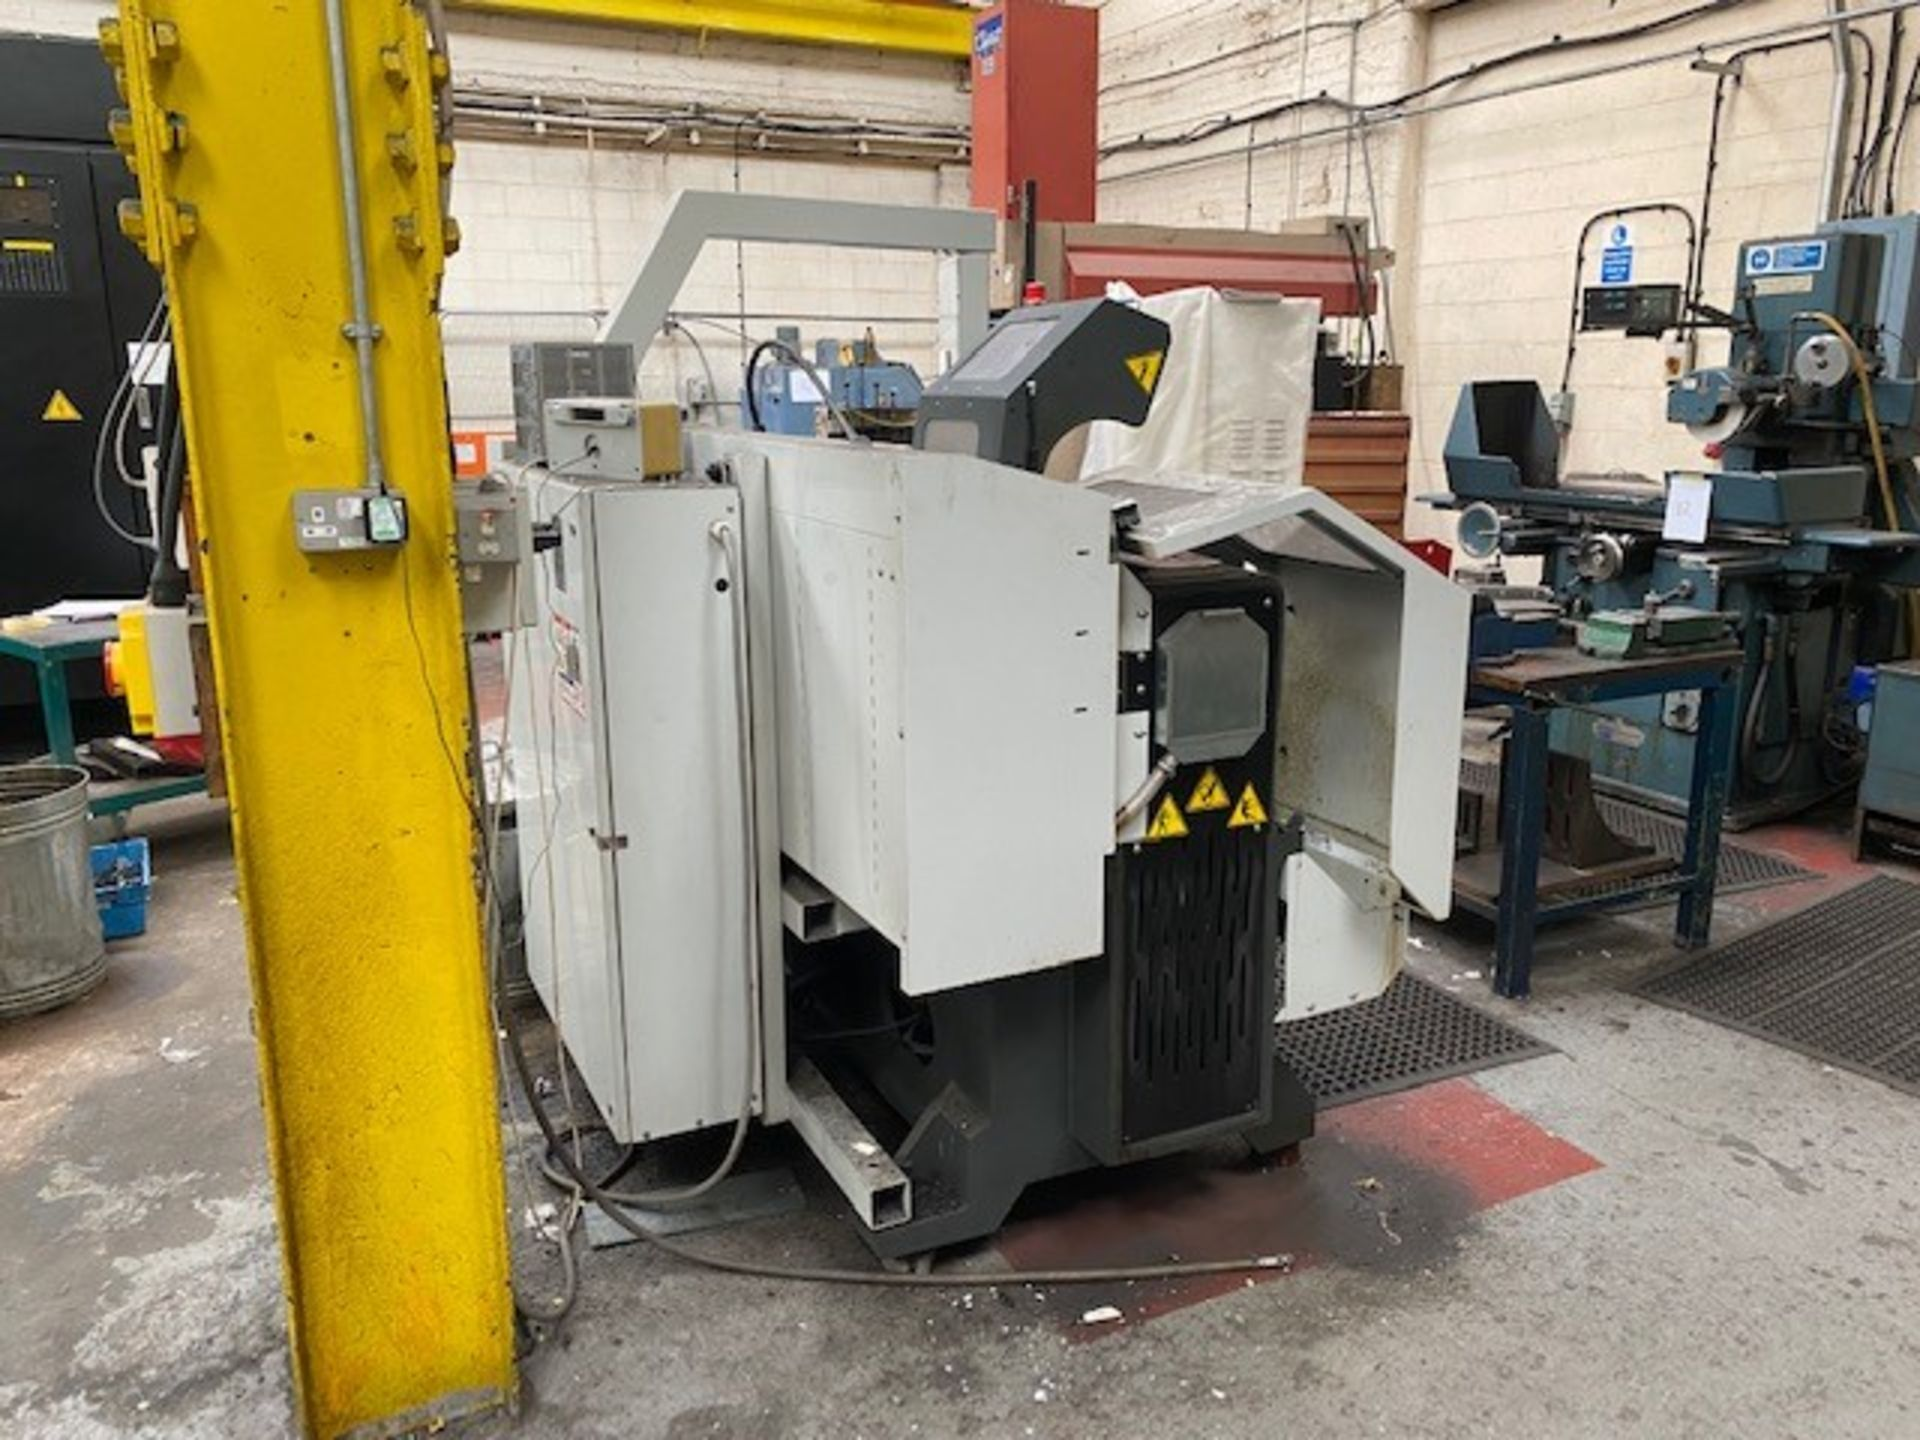 HASS ENCLOSED 2-AXIS CNC TOOLROOM LATHE WITH HASS CONTROLLER MODEL: TL-2 SERIAL NO: 3089388 DMF: - Image 2 of 5